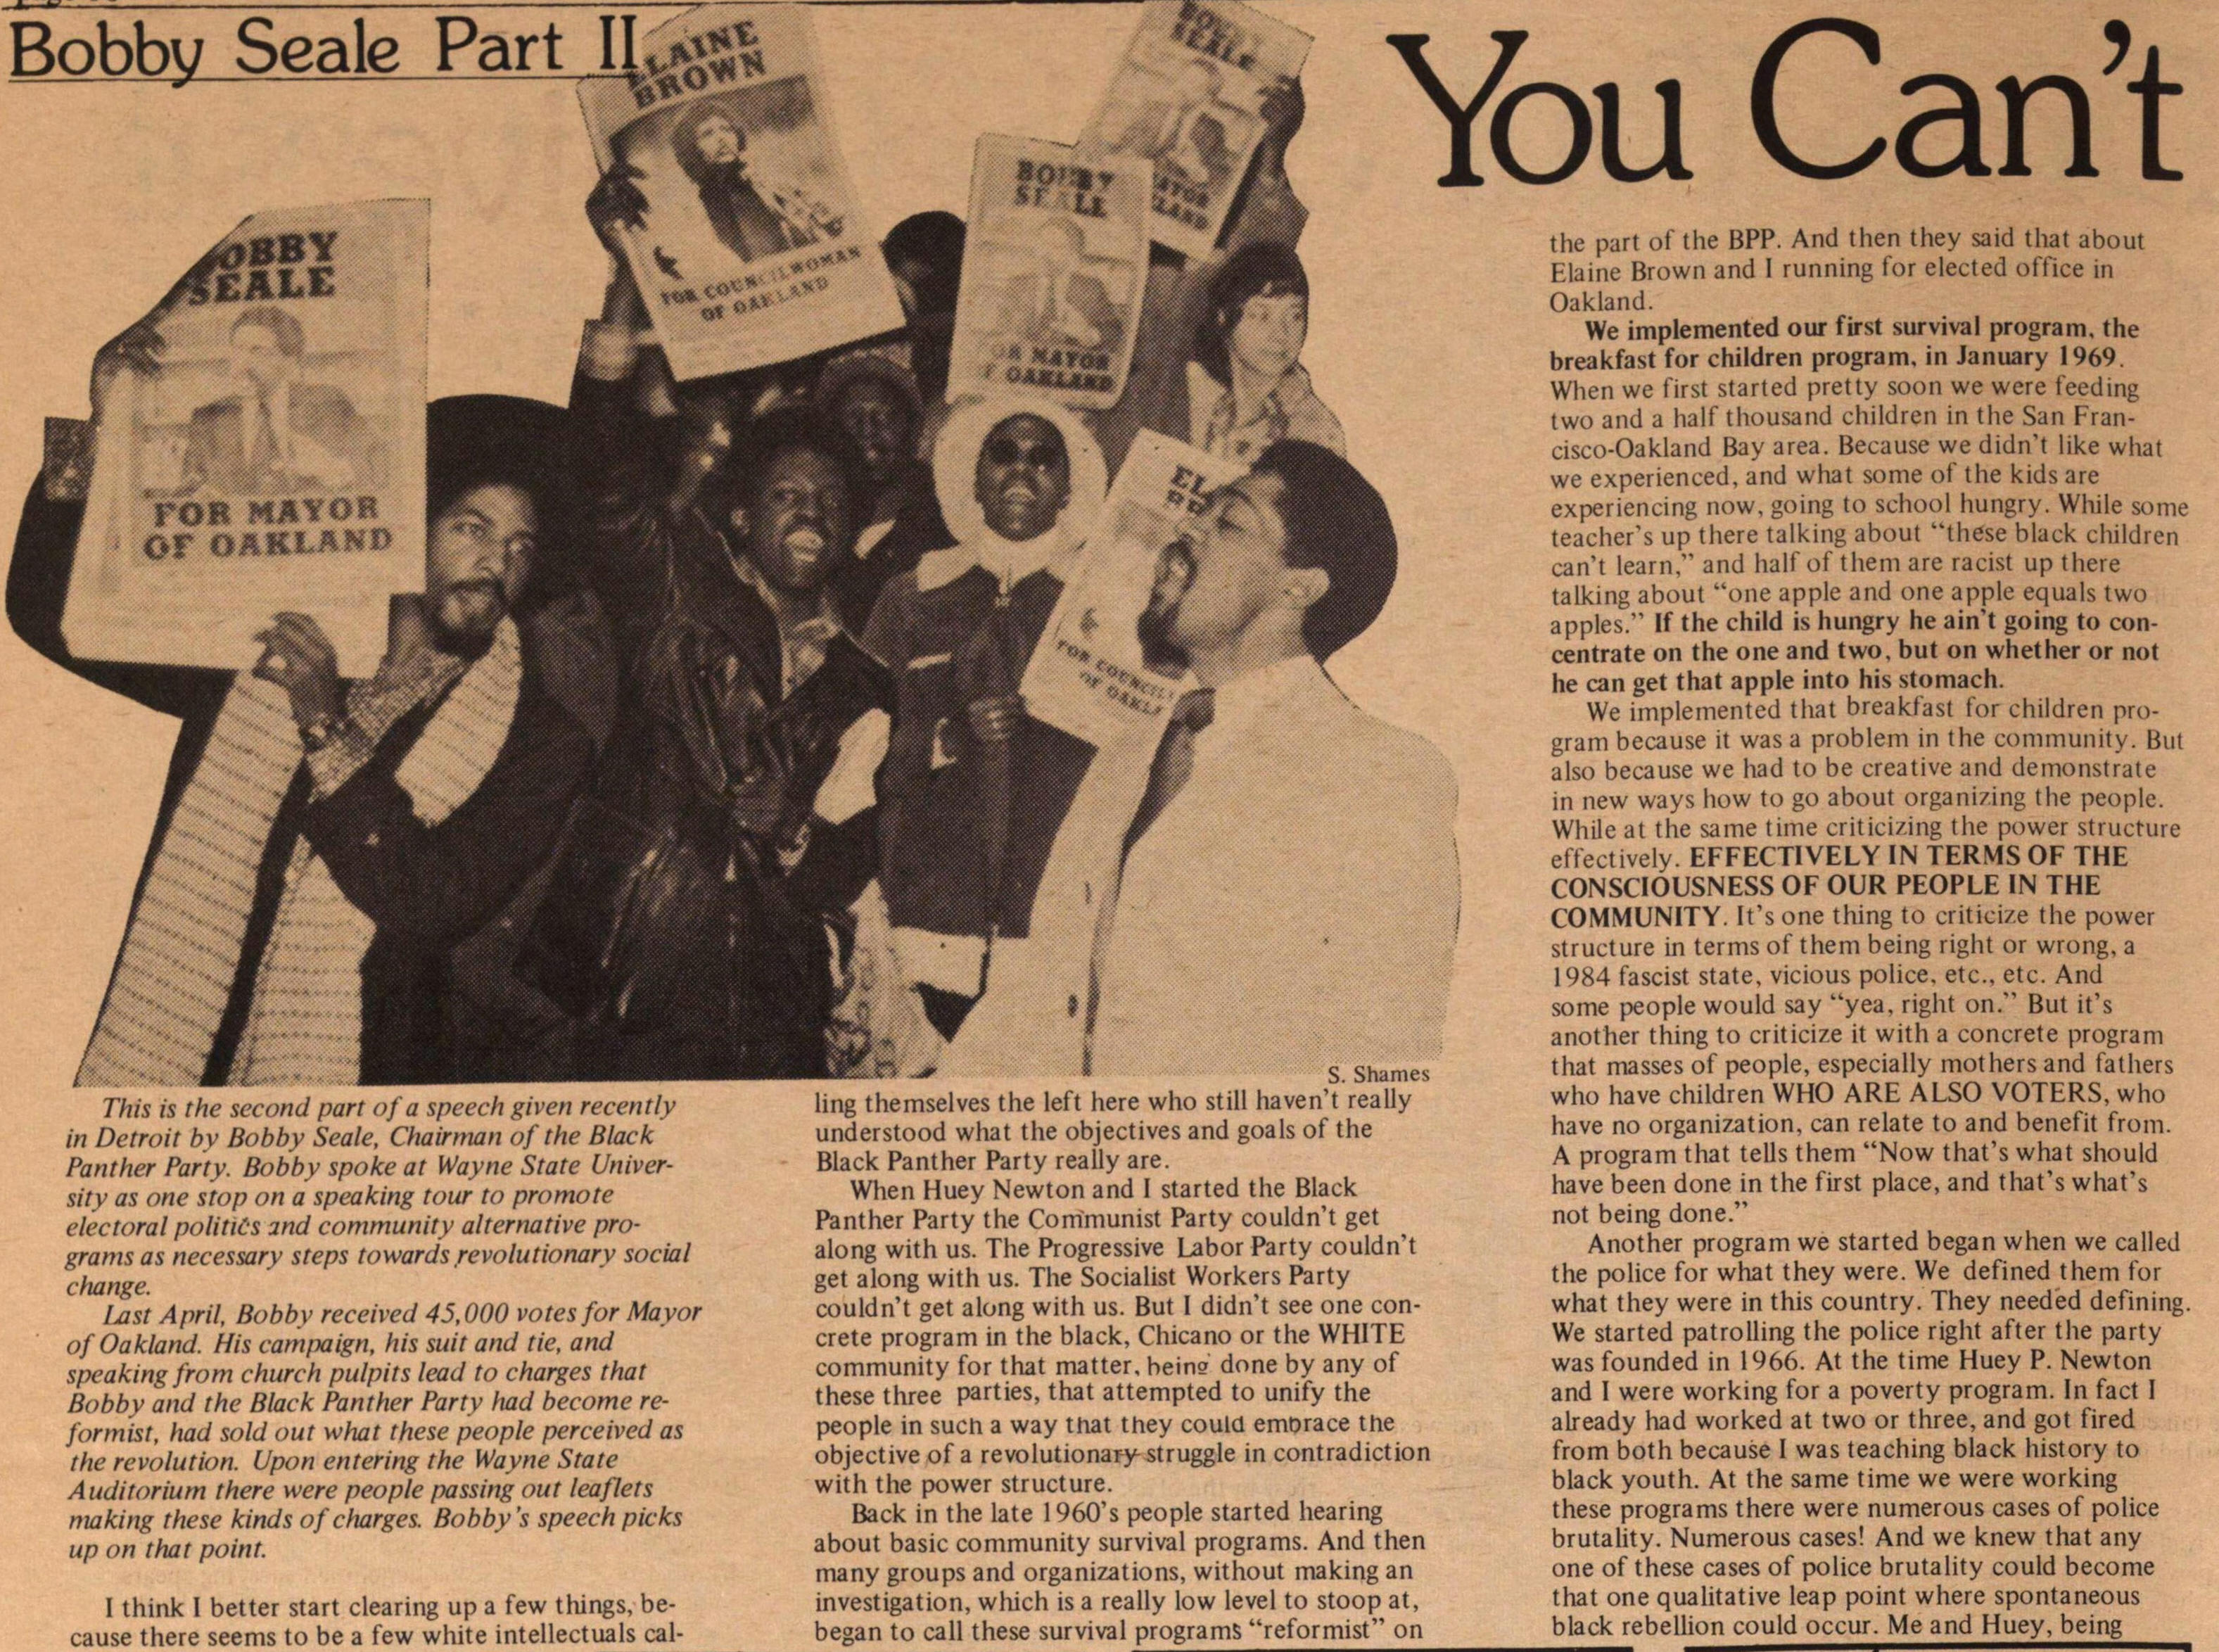 Bobby Seale Part Ii image